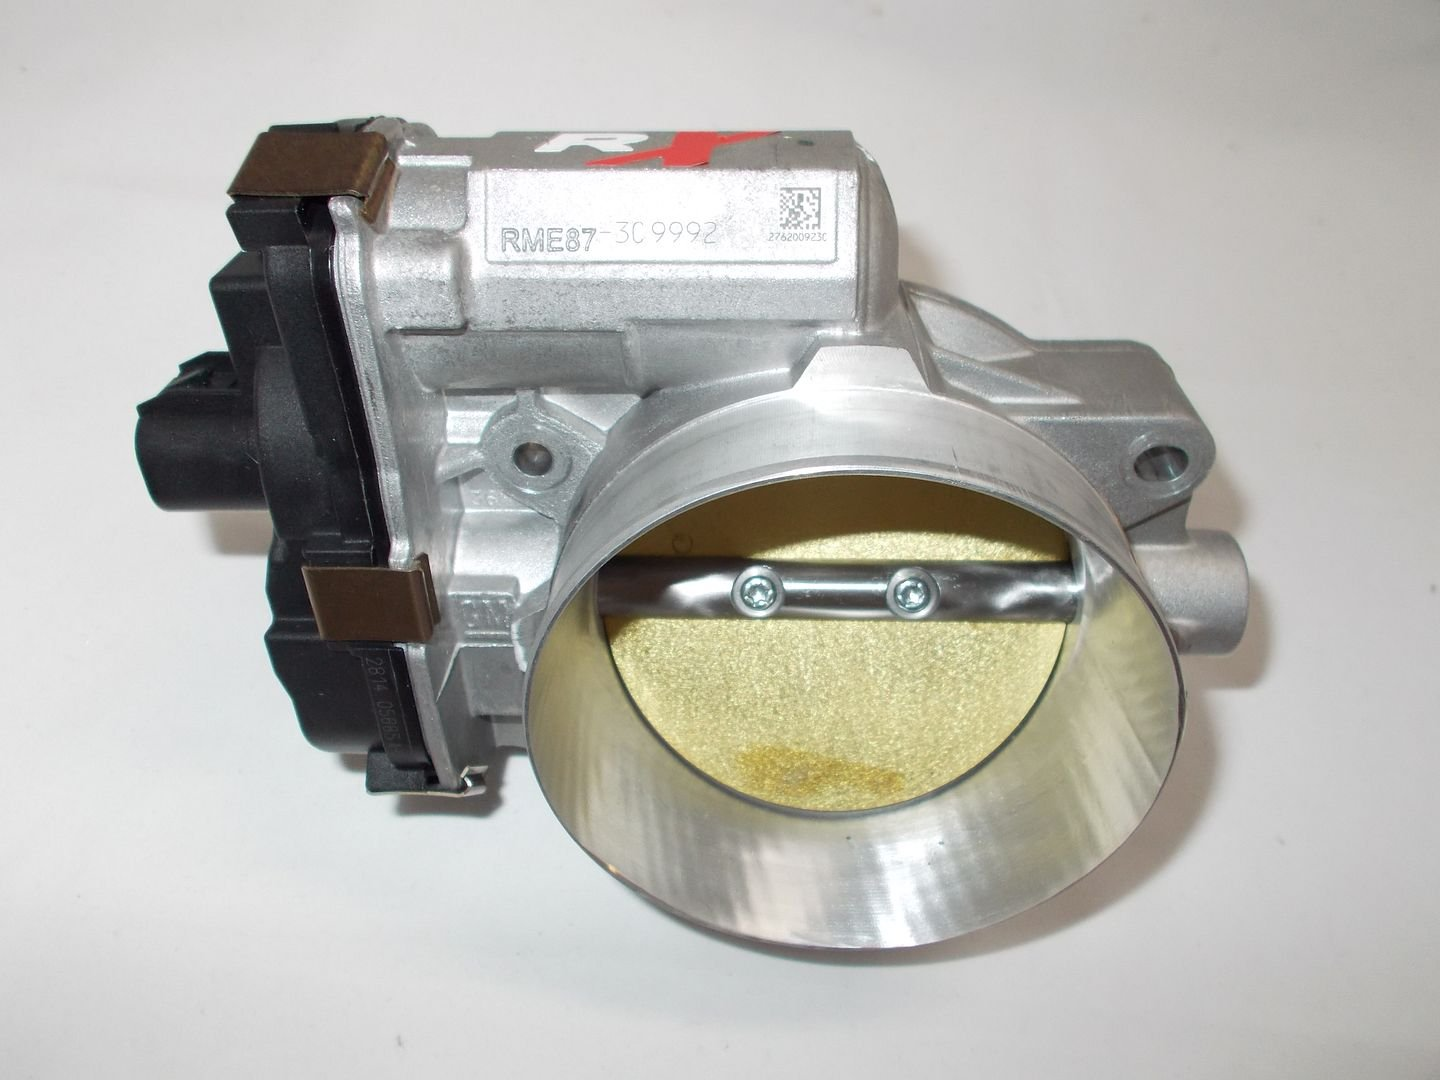 CNC Ported Throttle bodies for the LSA | Cadillac Owners Forum